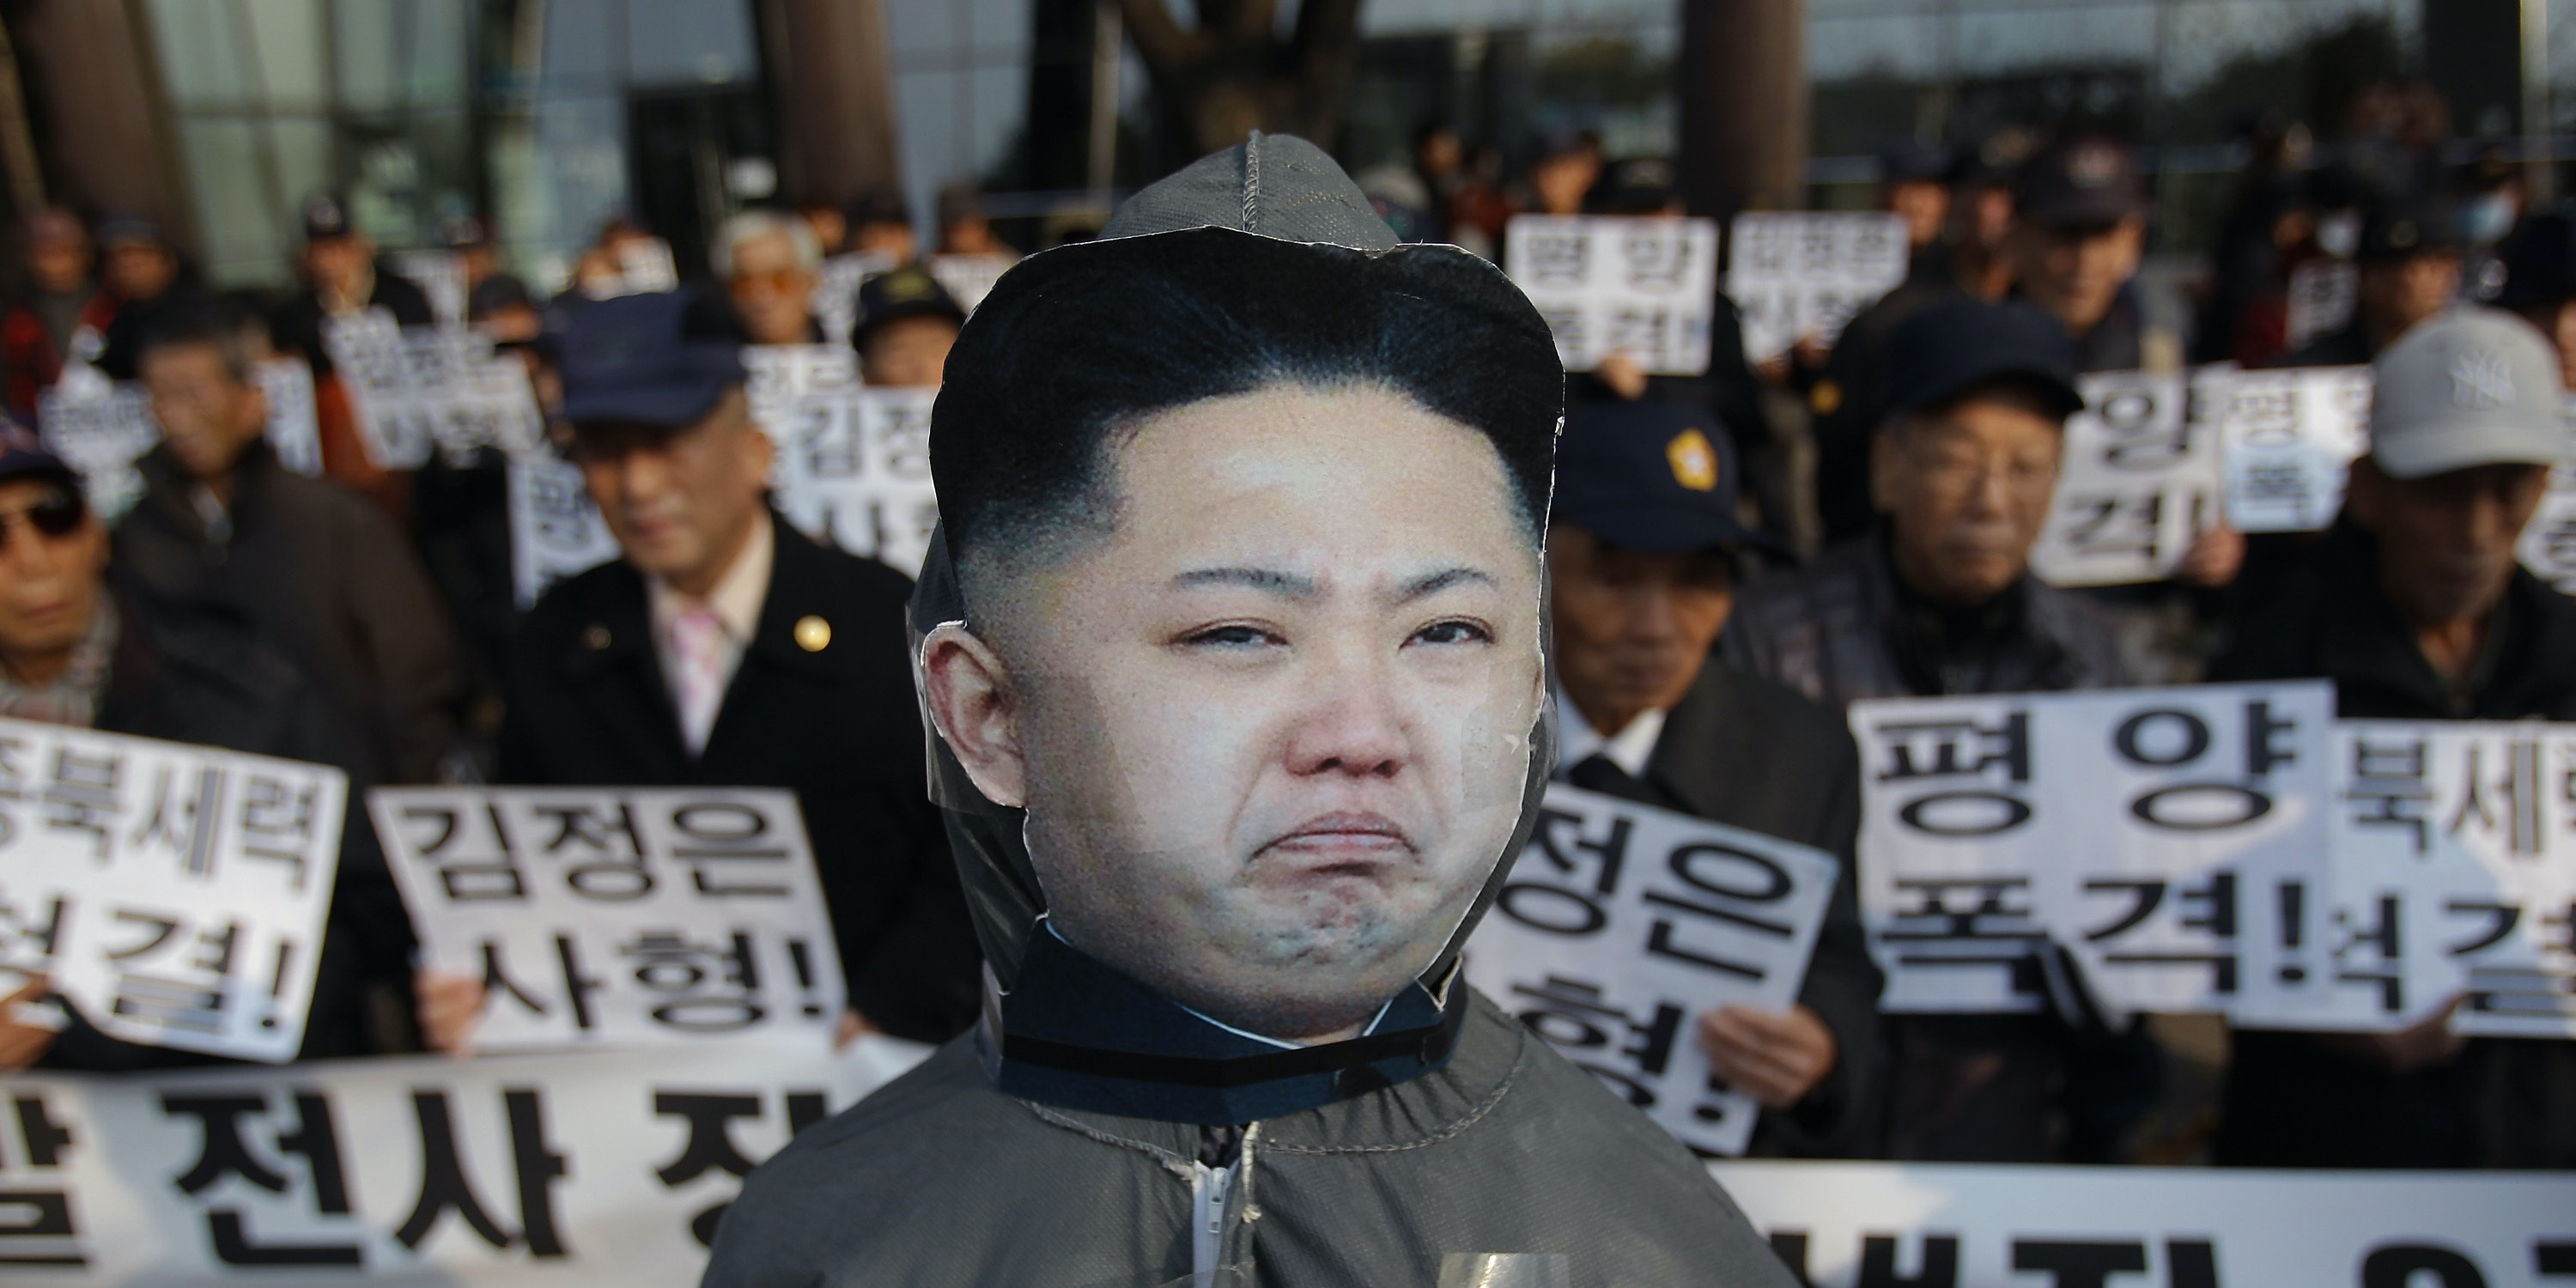 SEOUL, SOUTH KOREA - NOVEMBER 23:  The effigy of North Korean leader Kim Jong-Un is seen during an anti-North rally commemorating the four people killed in a 2010 attack by North Korea in Yeonpyeong on November 23, 2013 in Seoul, South Korea. On November 23, 2010, North Korea fired a barrage of artillery during South Korean military drill on the border island of Yeonpyeong, killing four people, including two civilians and two South Korean marines.  (Photo by Chung Sung-Jun/Getty Images)